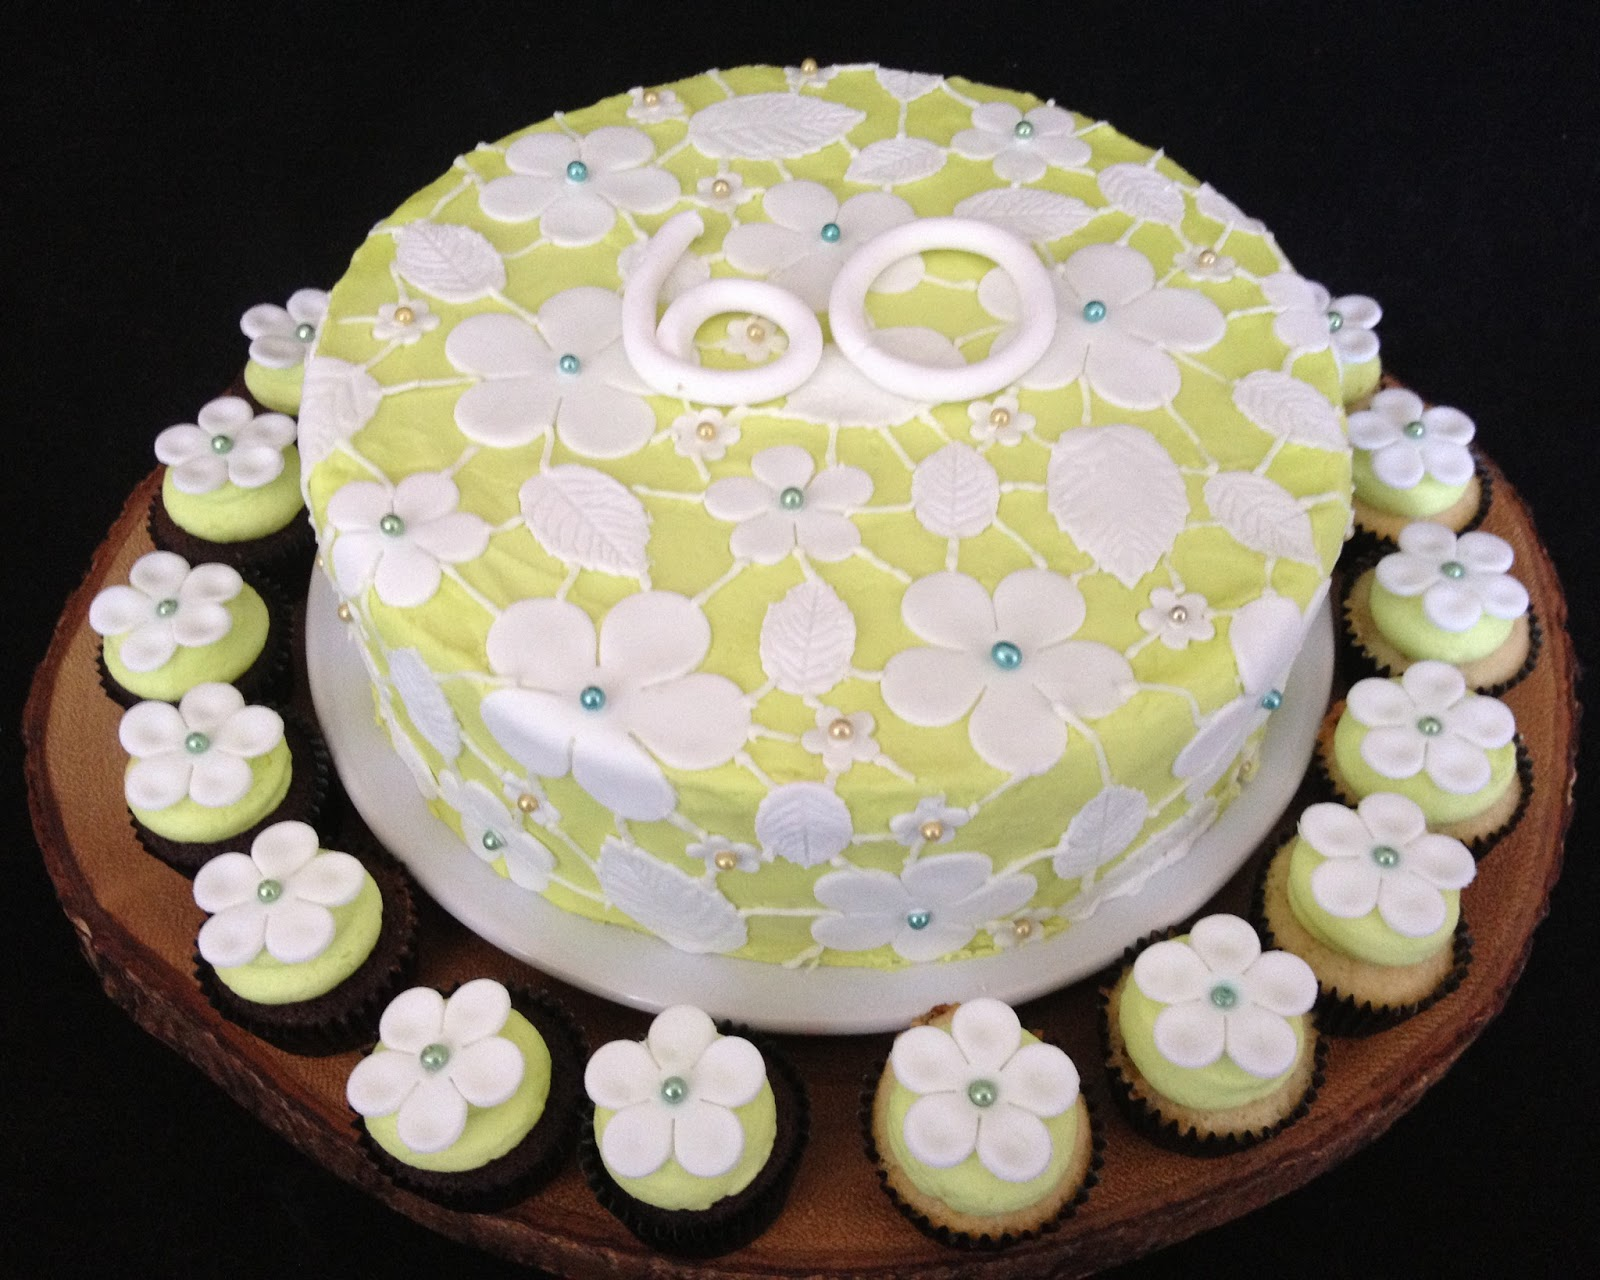 The Cake Was Iced In A Pale Green Then Covered Flowers And Leaves Cut Out Of White Fondant I Joined Them All With Some Royal Icing To Make It Look